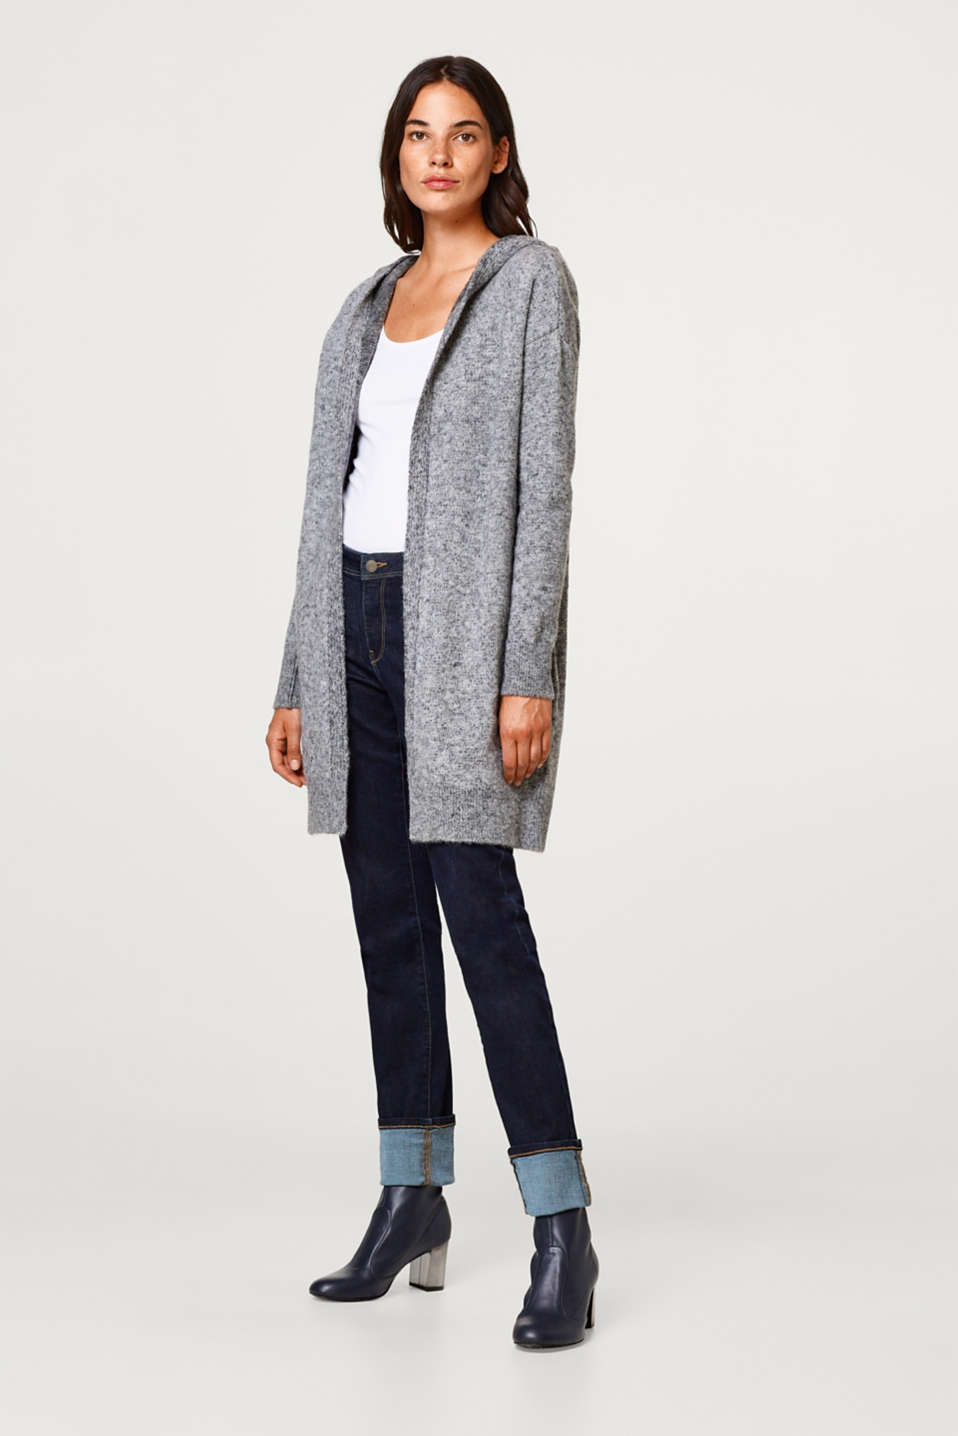 Wool blend: Long cardigan with a melange finish